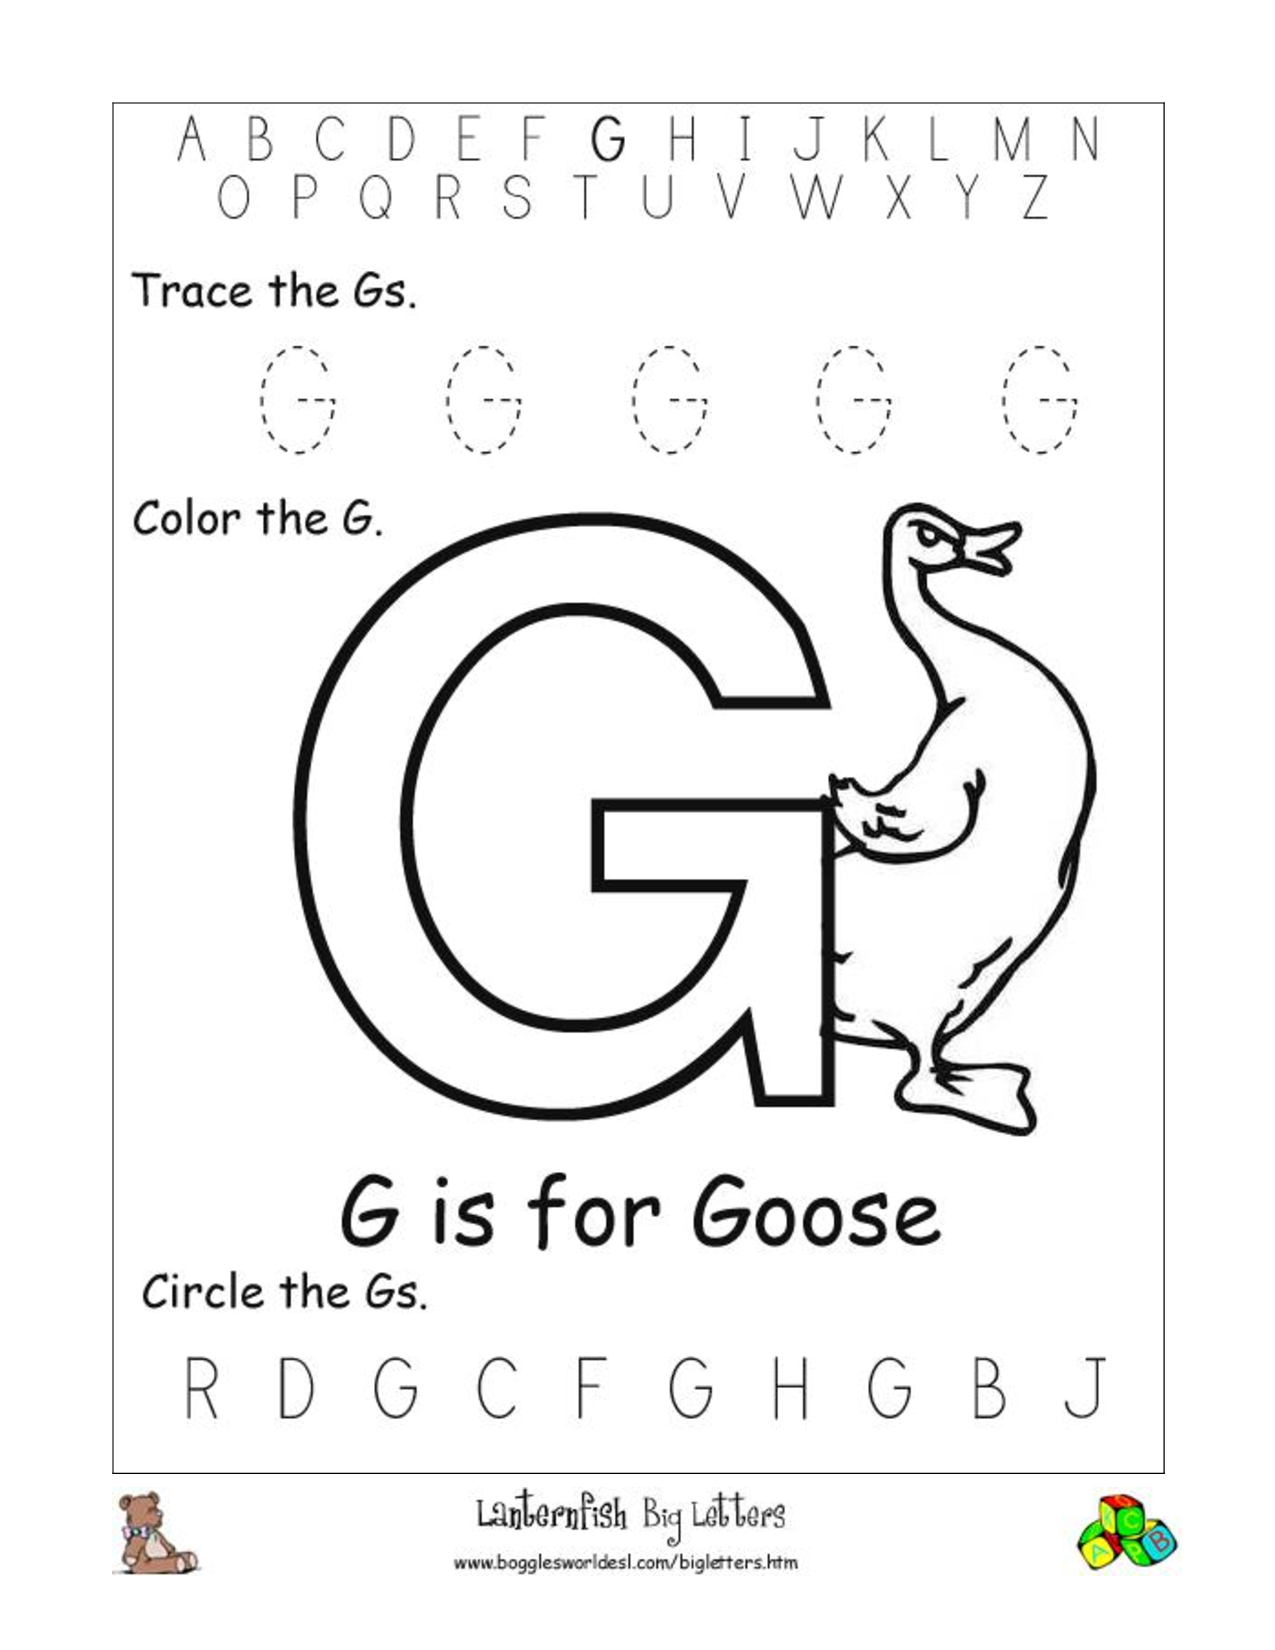 15 Exciting Letter G Worksheets For Kids